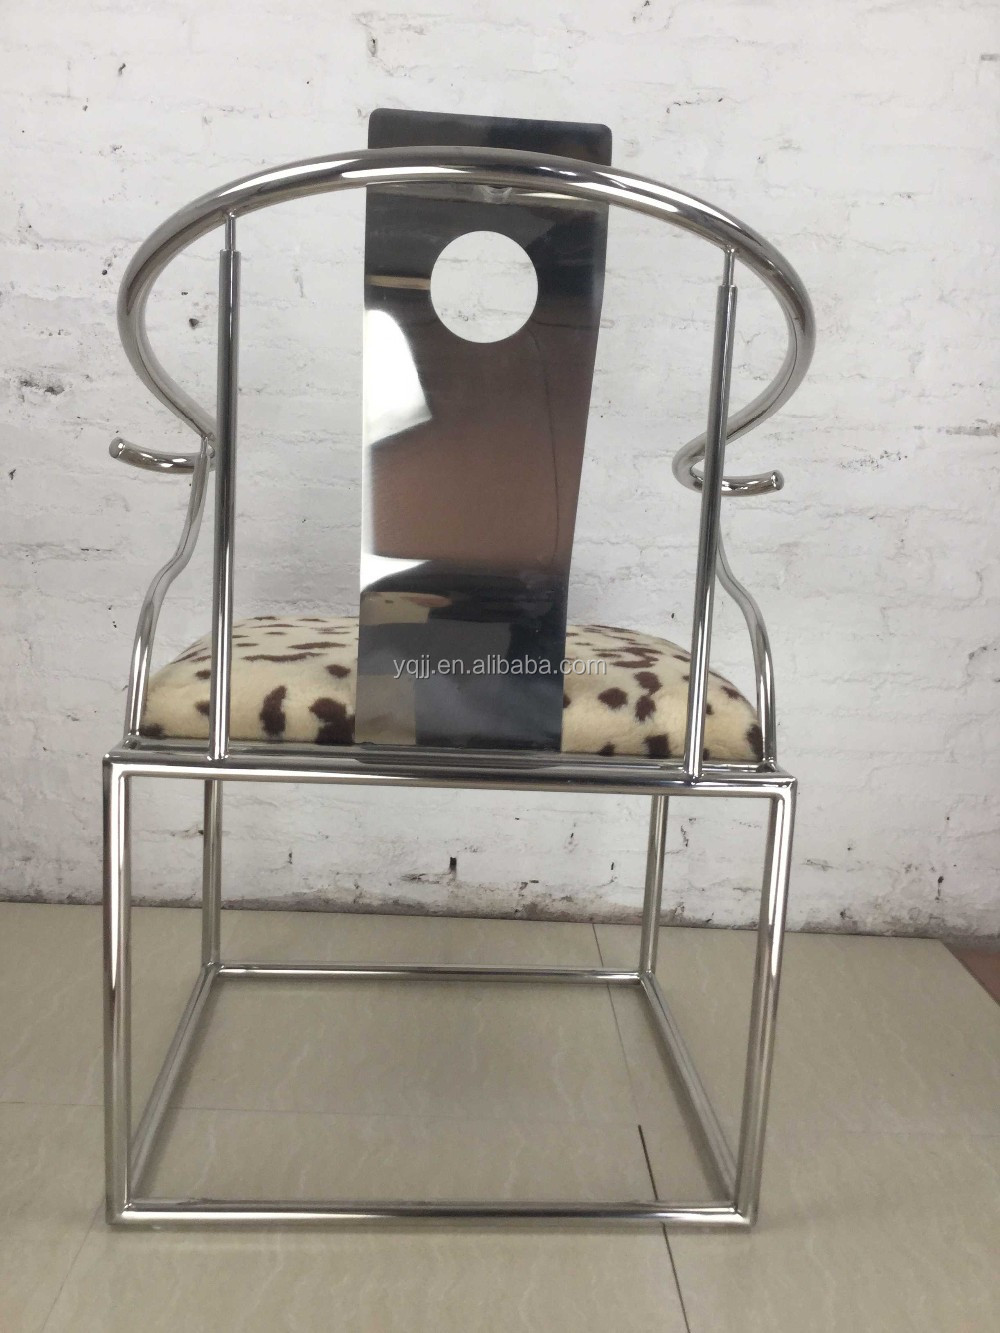 Soft comfortable stainless steel modern leisure chair furniture